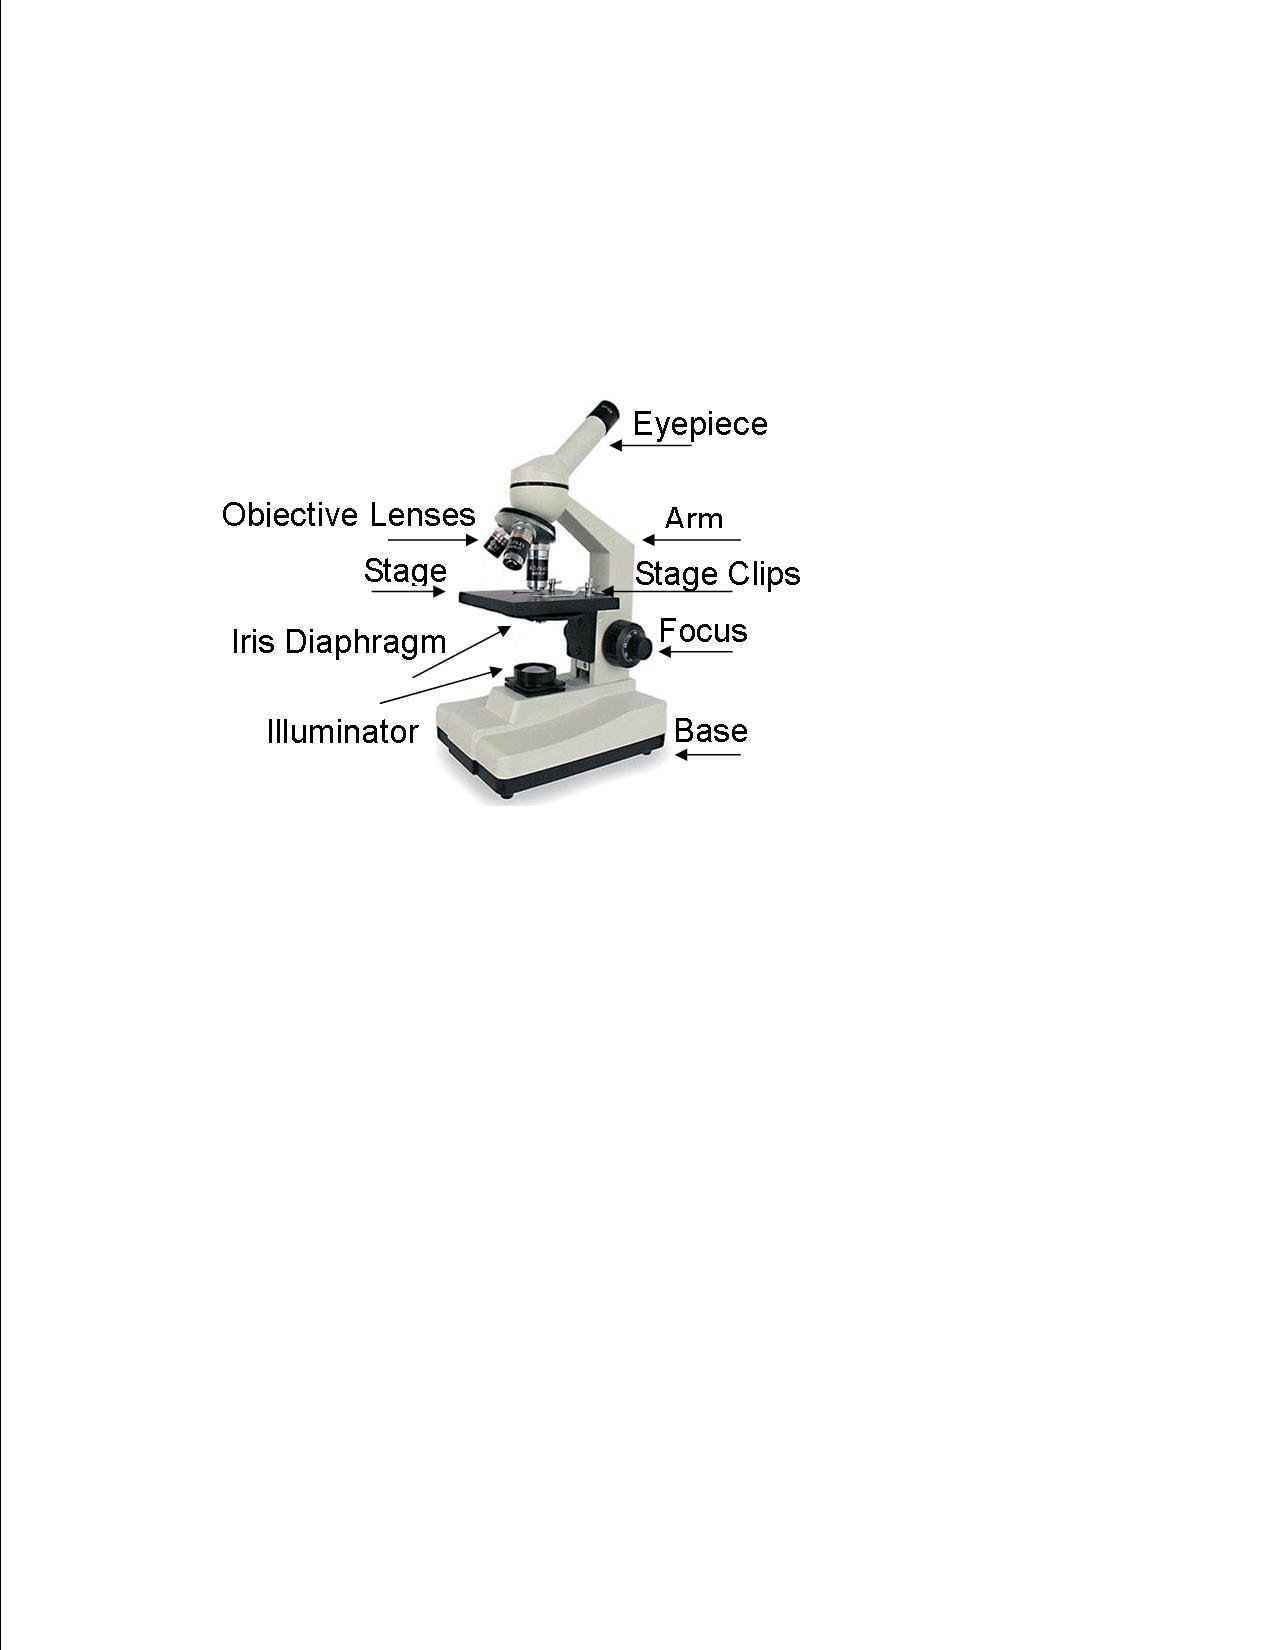 Compound Microscope Parts - Microscopes for everyday use at